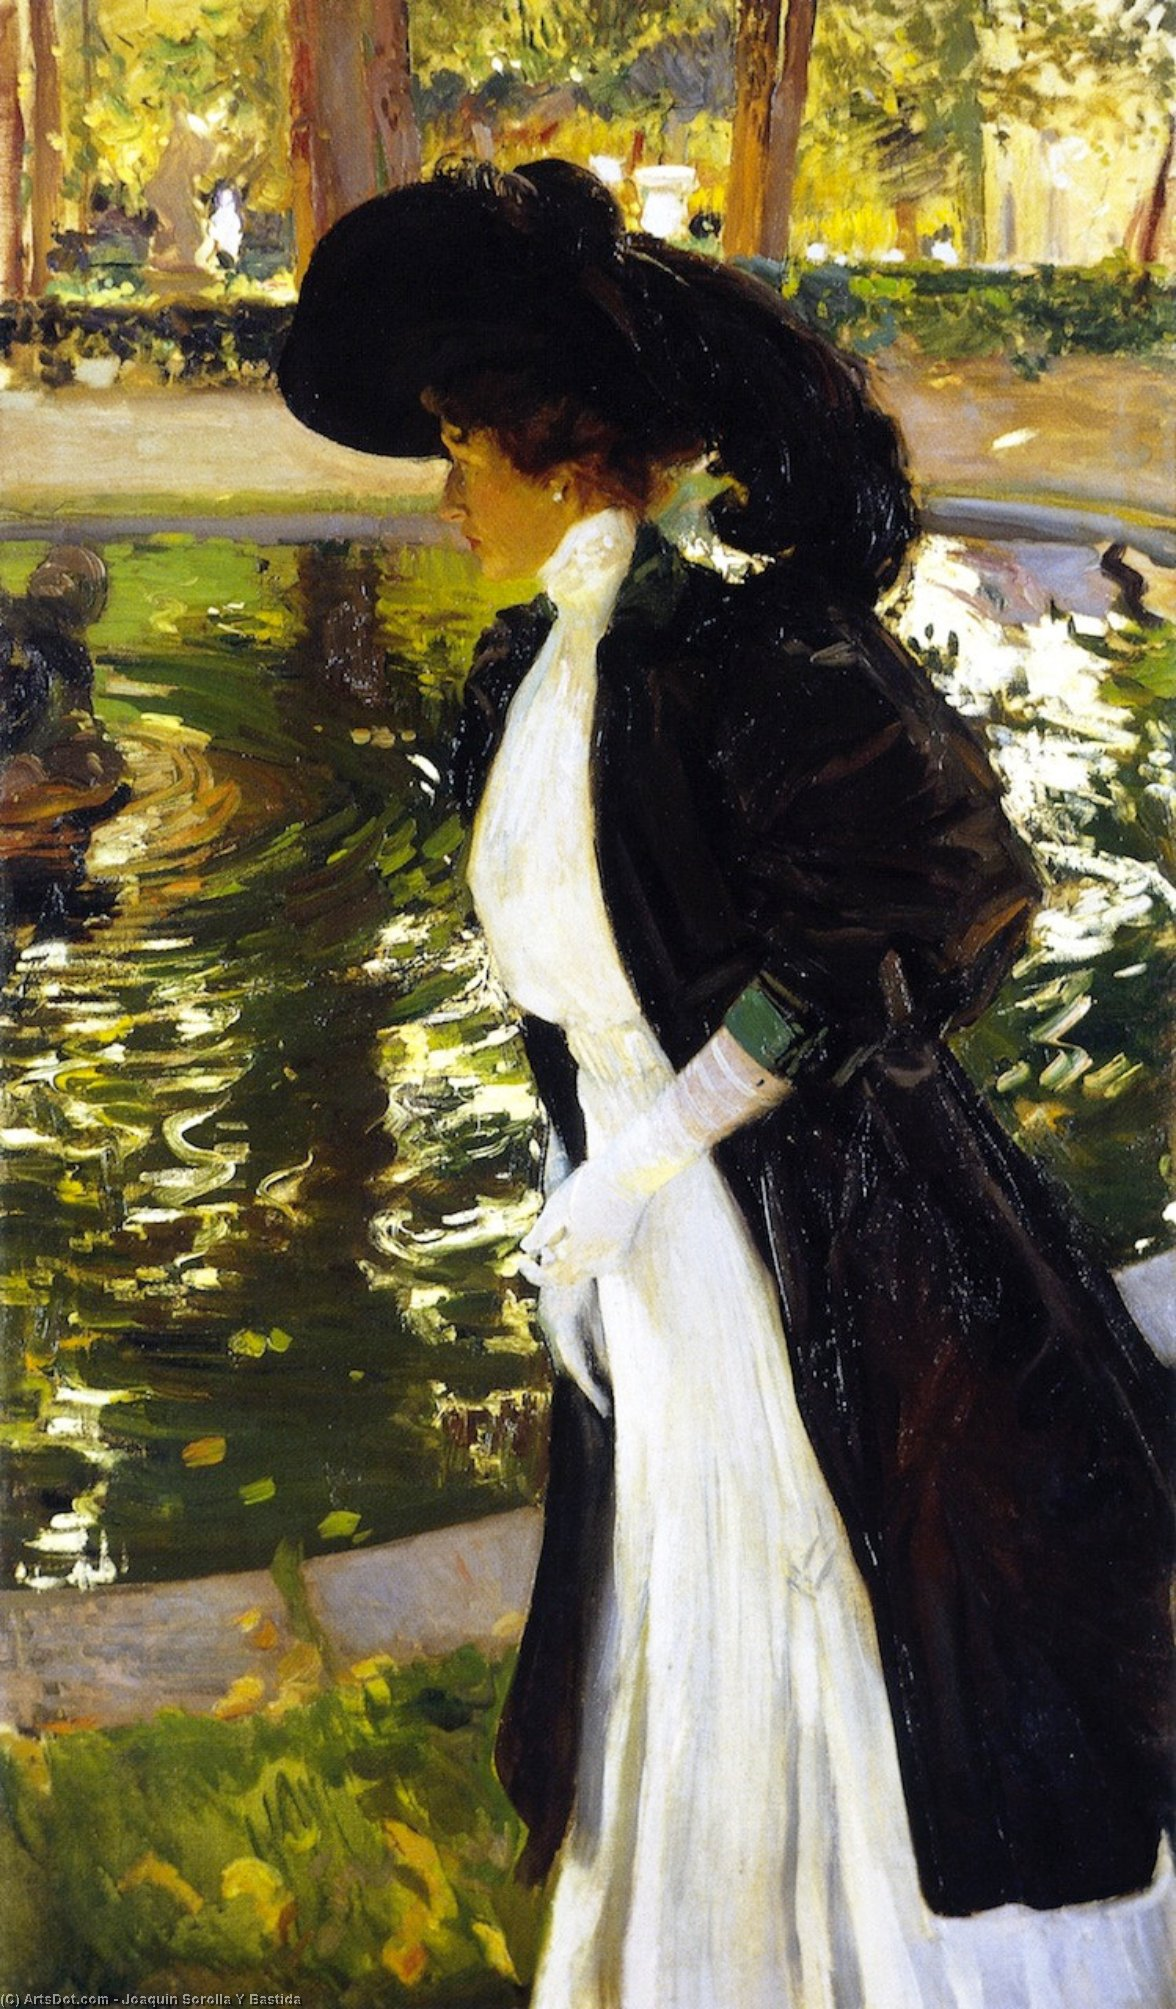 Clotilde Strolling in the Gardens of La Granja, Oil On Canvas by Joaquin Sorolla Y Bastida (1863-1923, Spain)